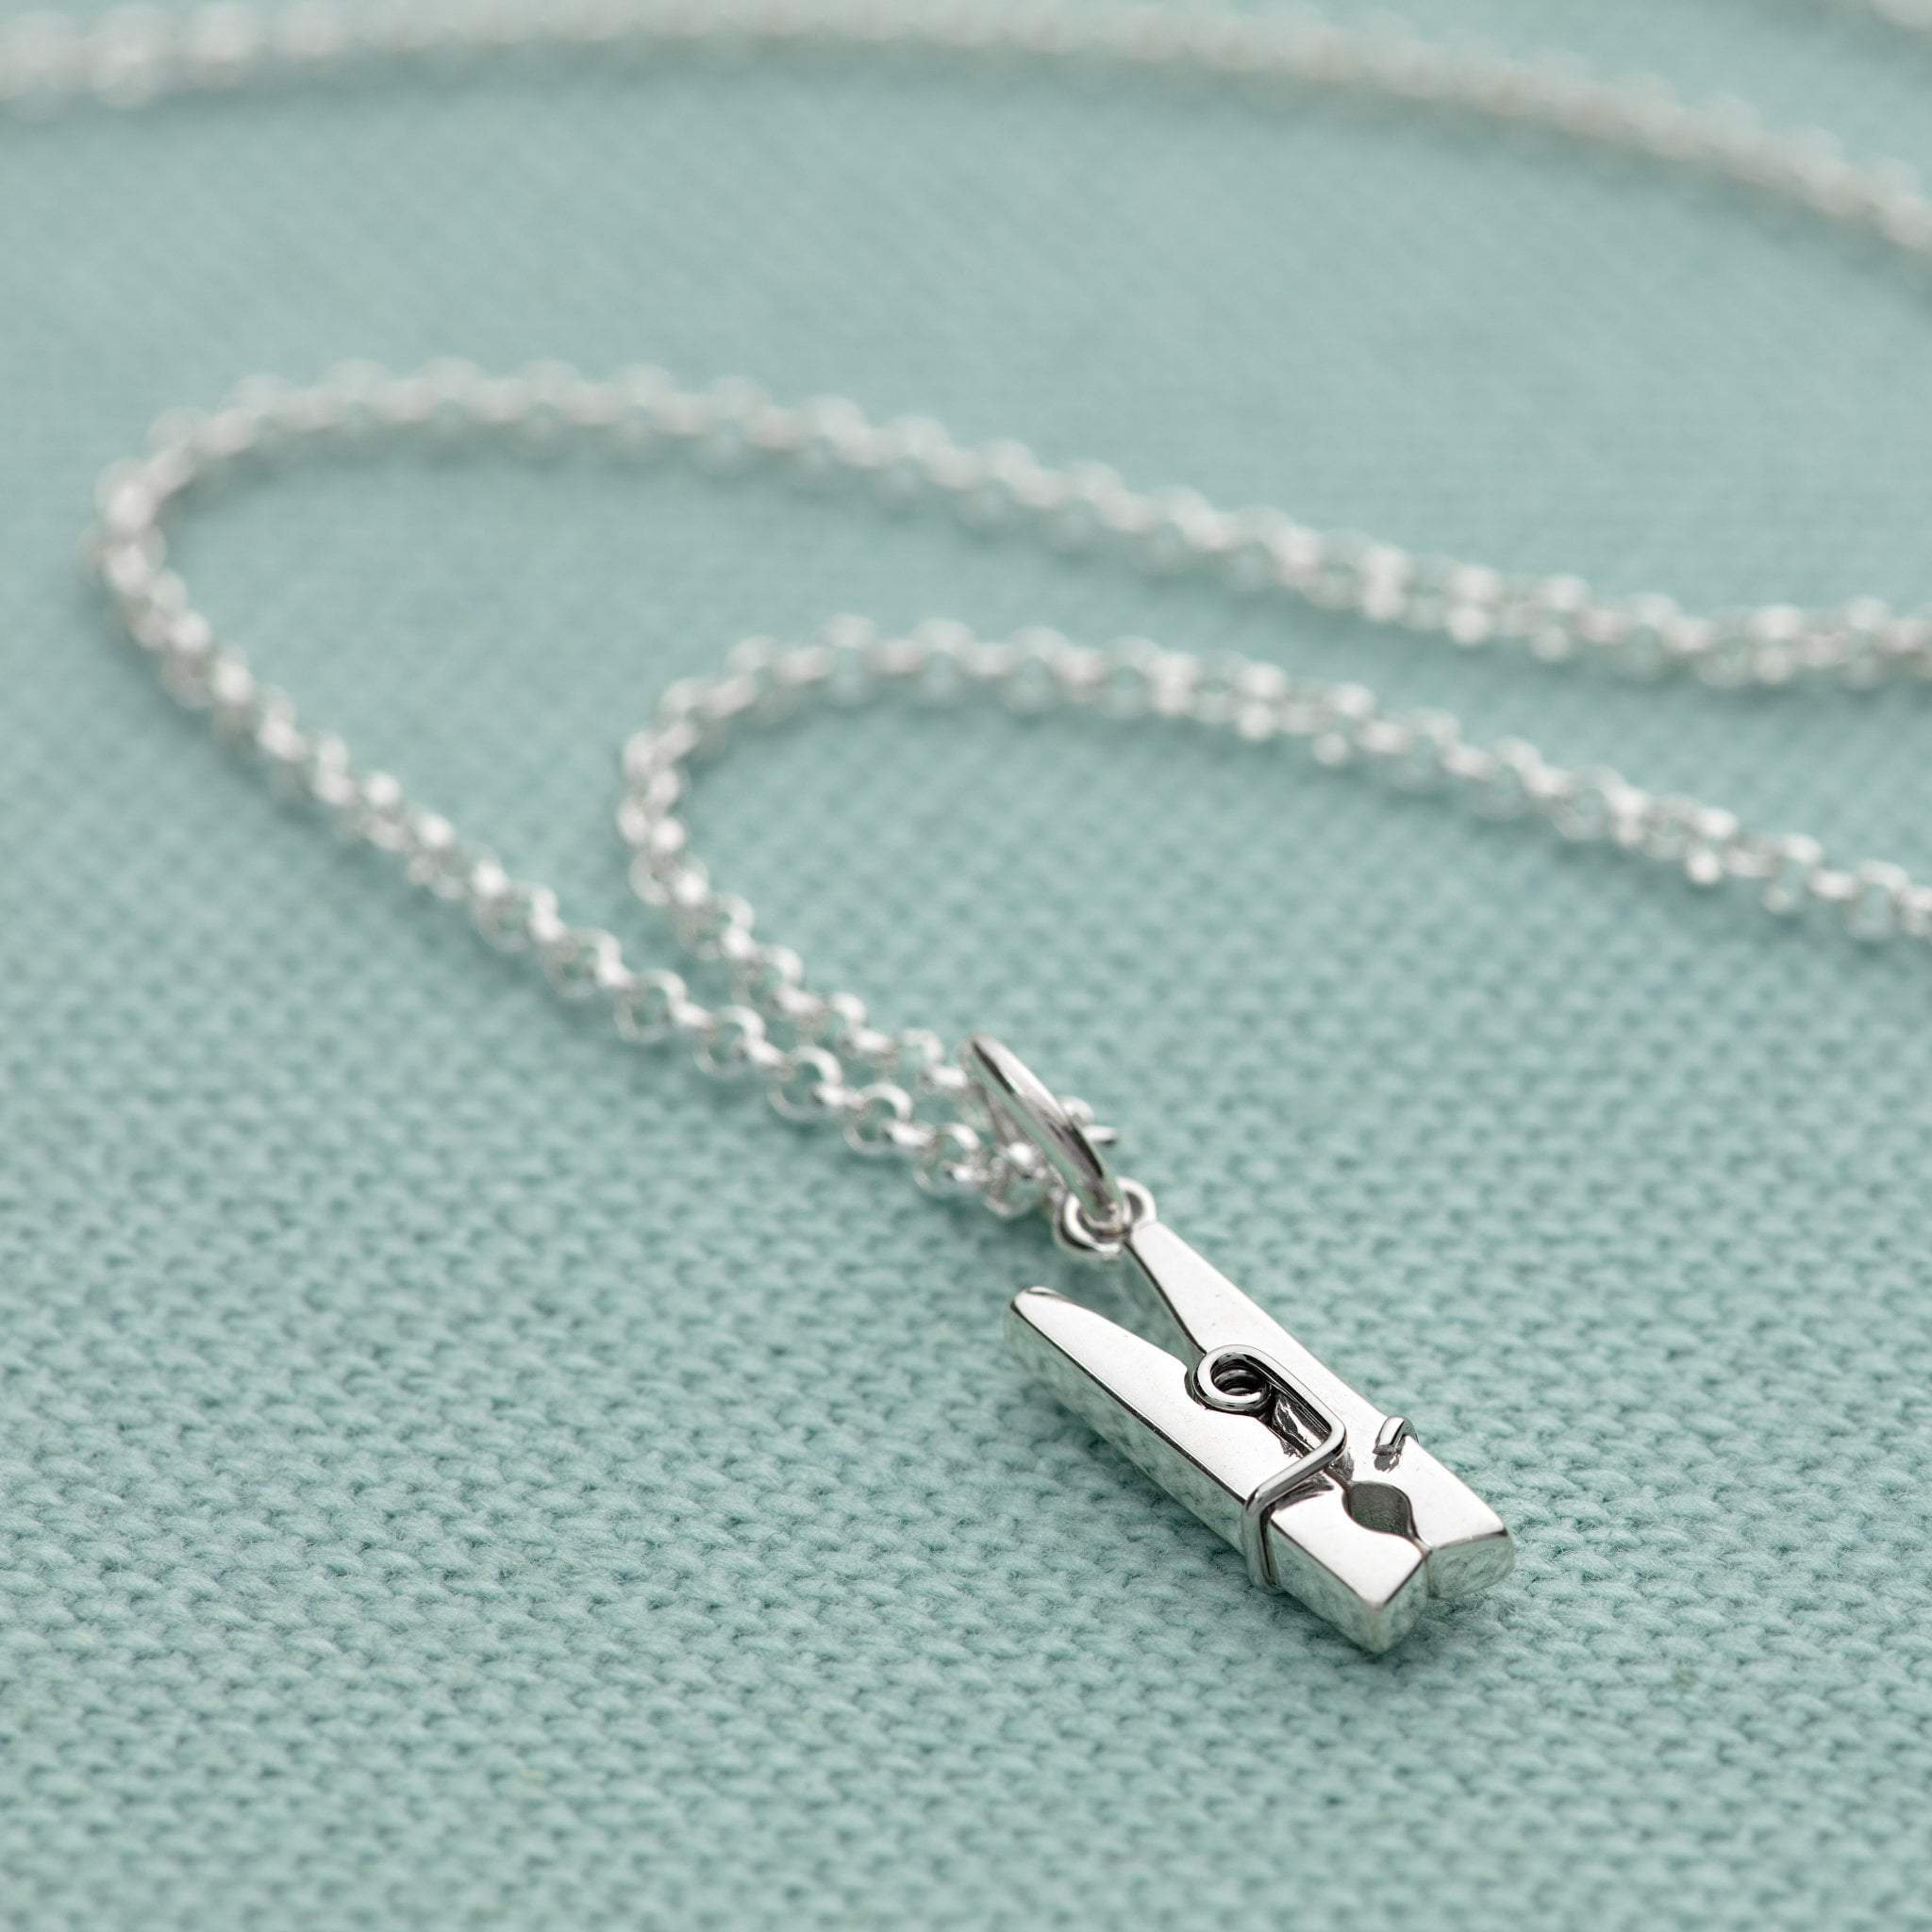 Personalised Silver Clothes Peg Necklace - Lily Charmed